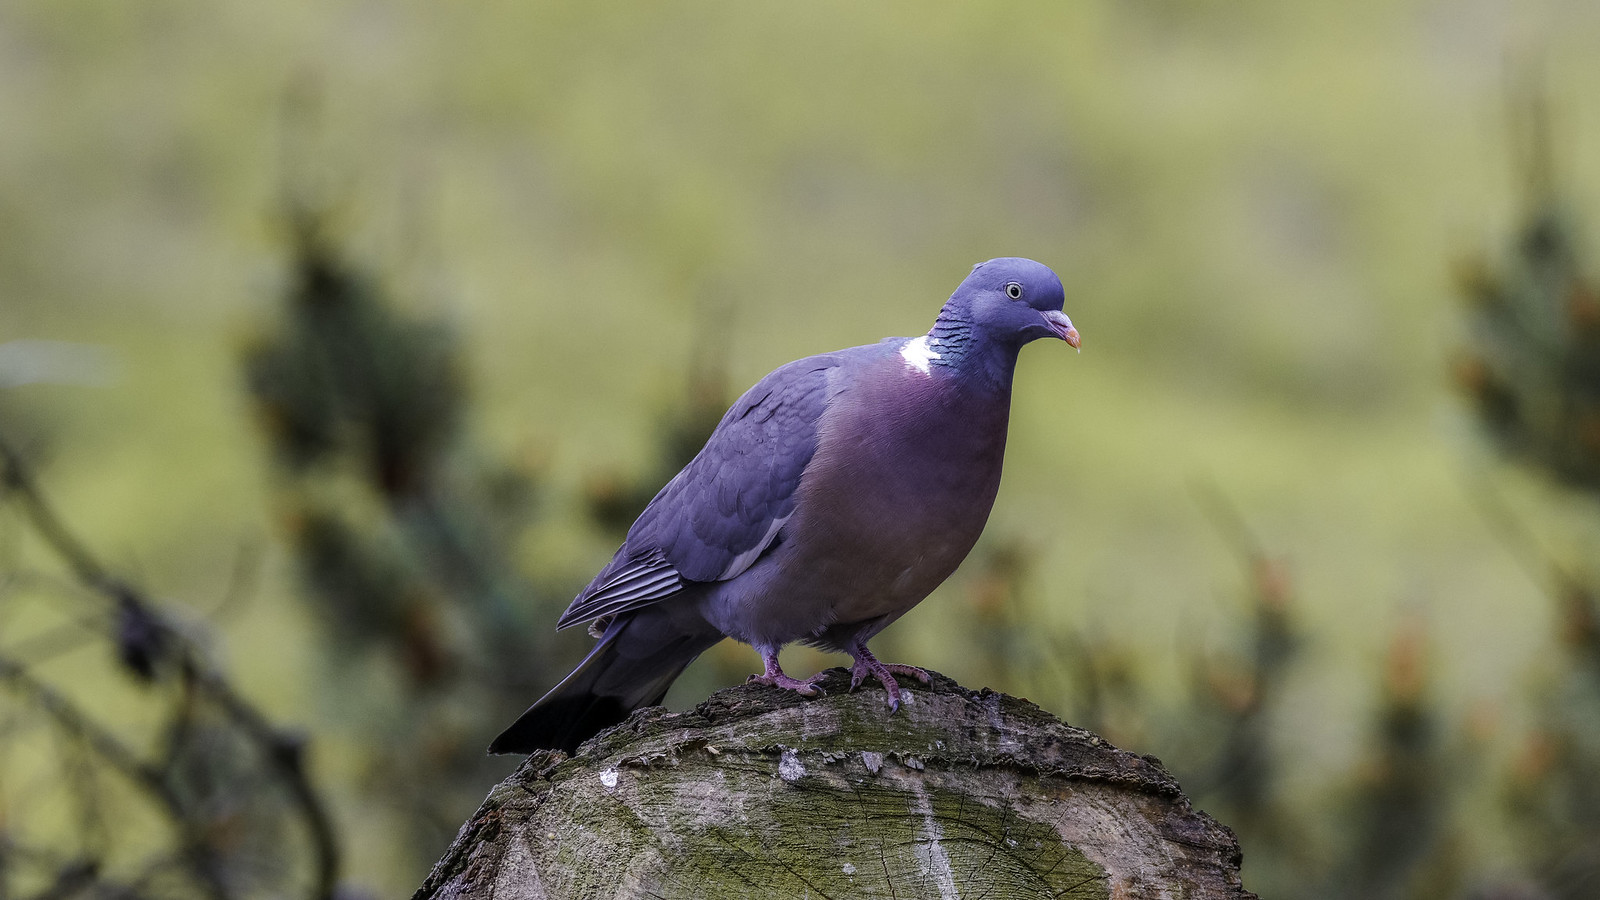 beautiful pigeon picture andrew